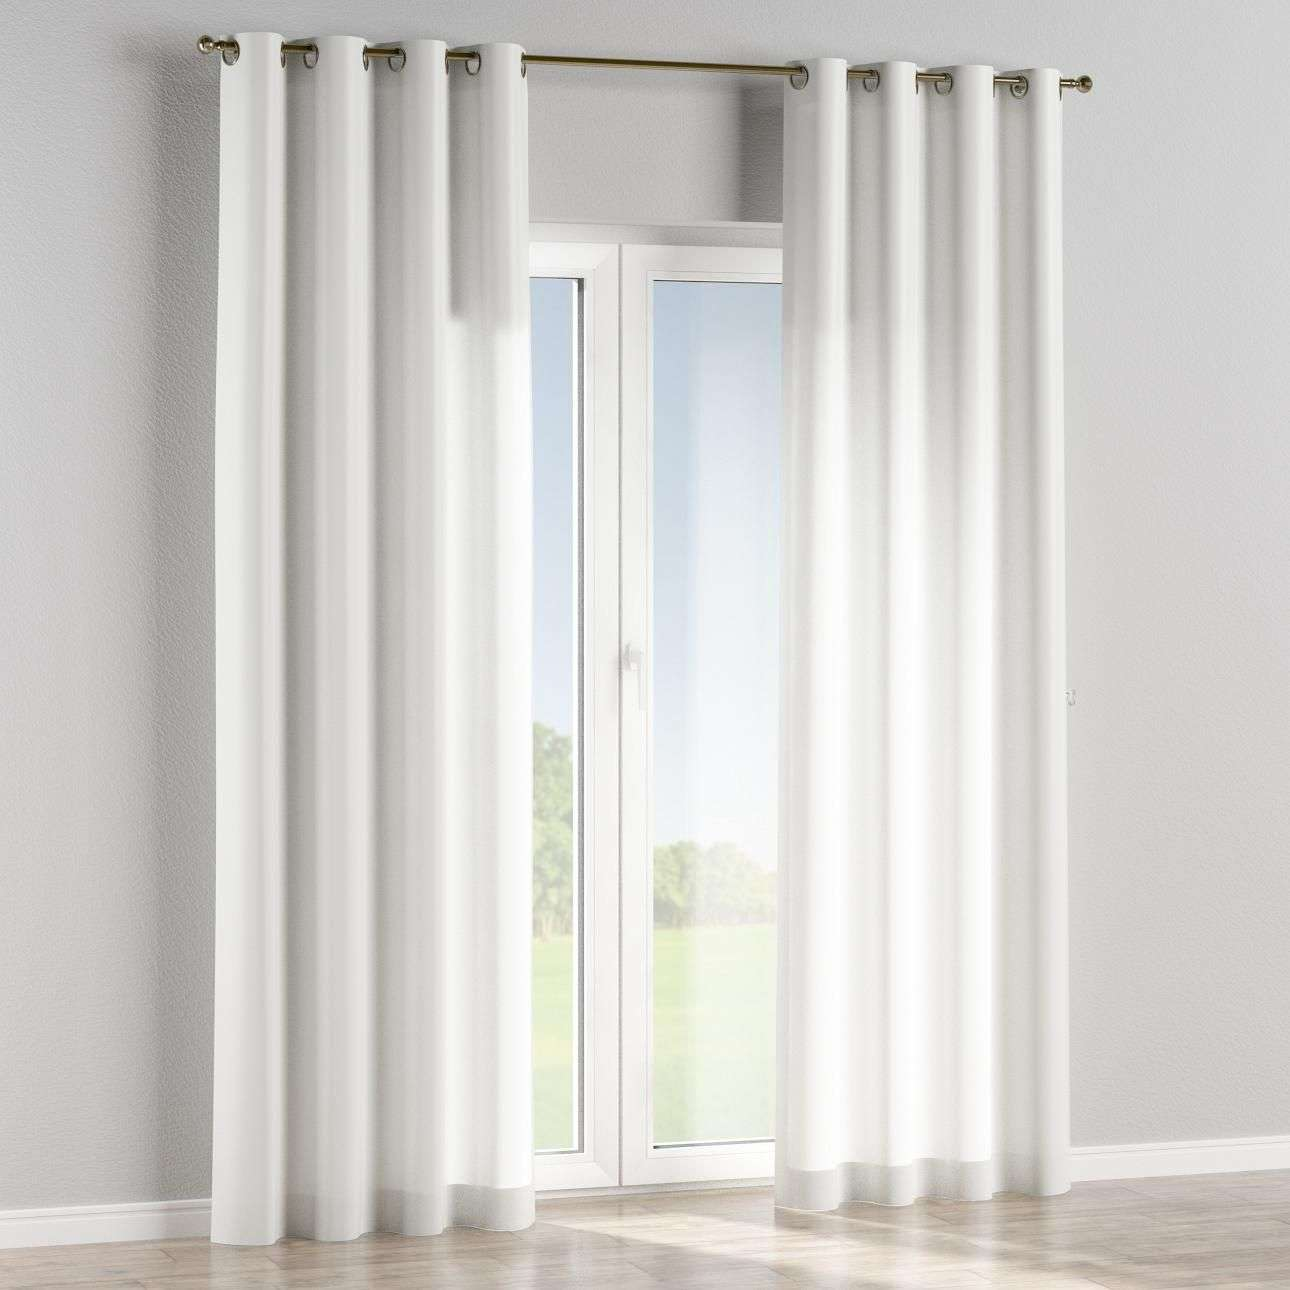 Eyelet curtains in collection Fleur , fabric: 139-05